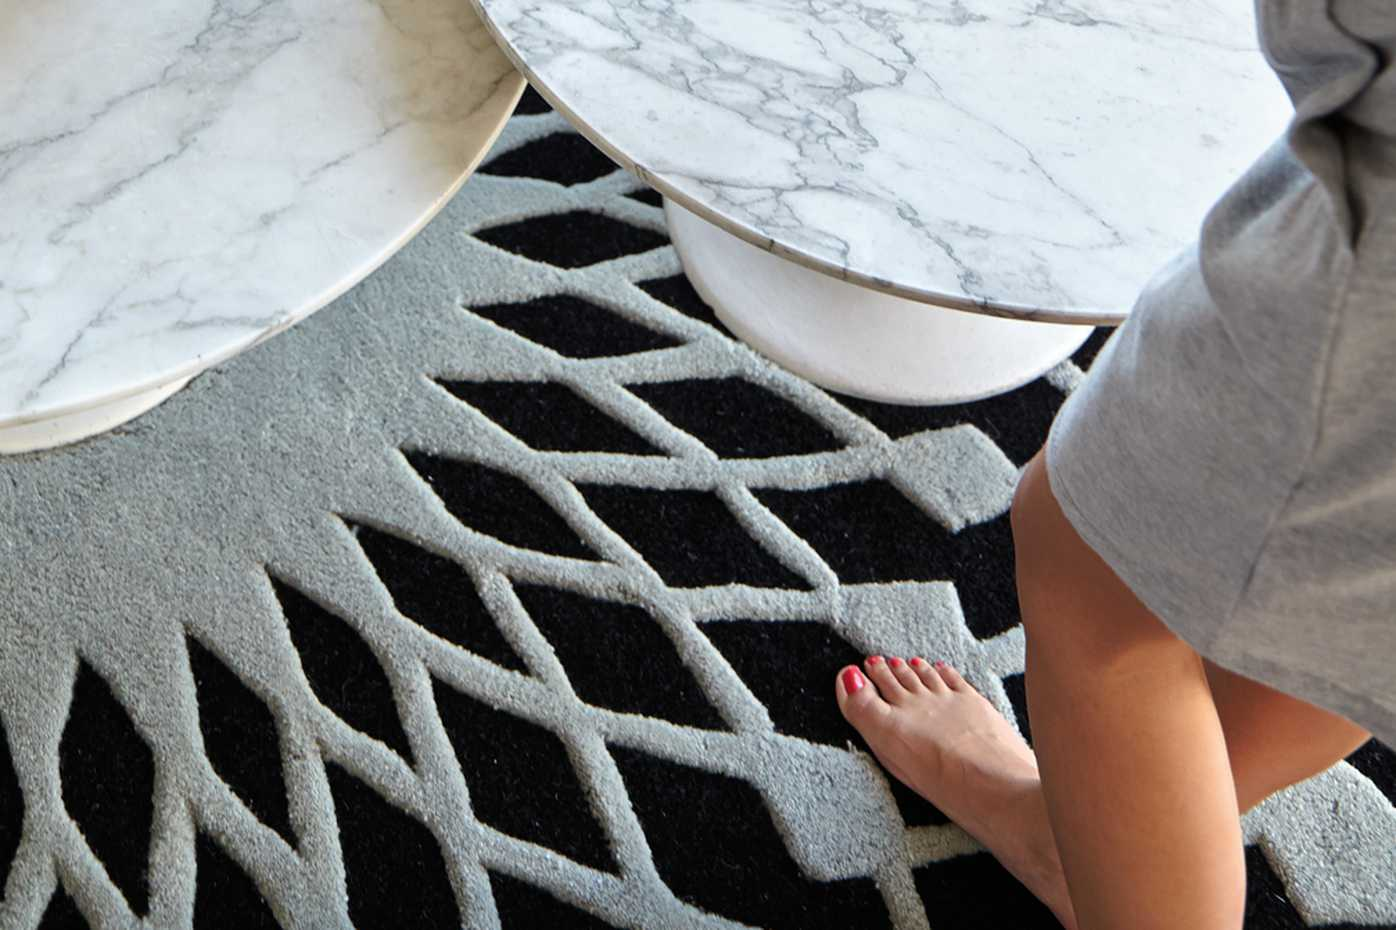 Trama by Gan Rugs product image 4